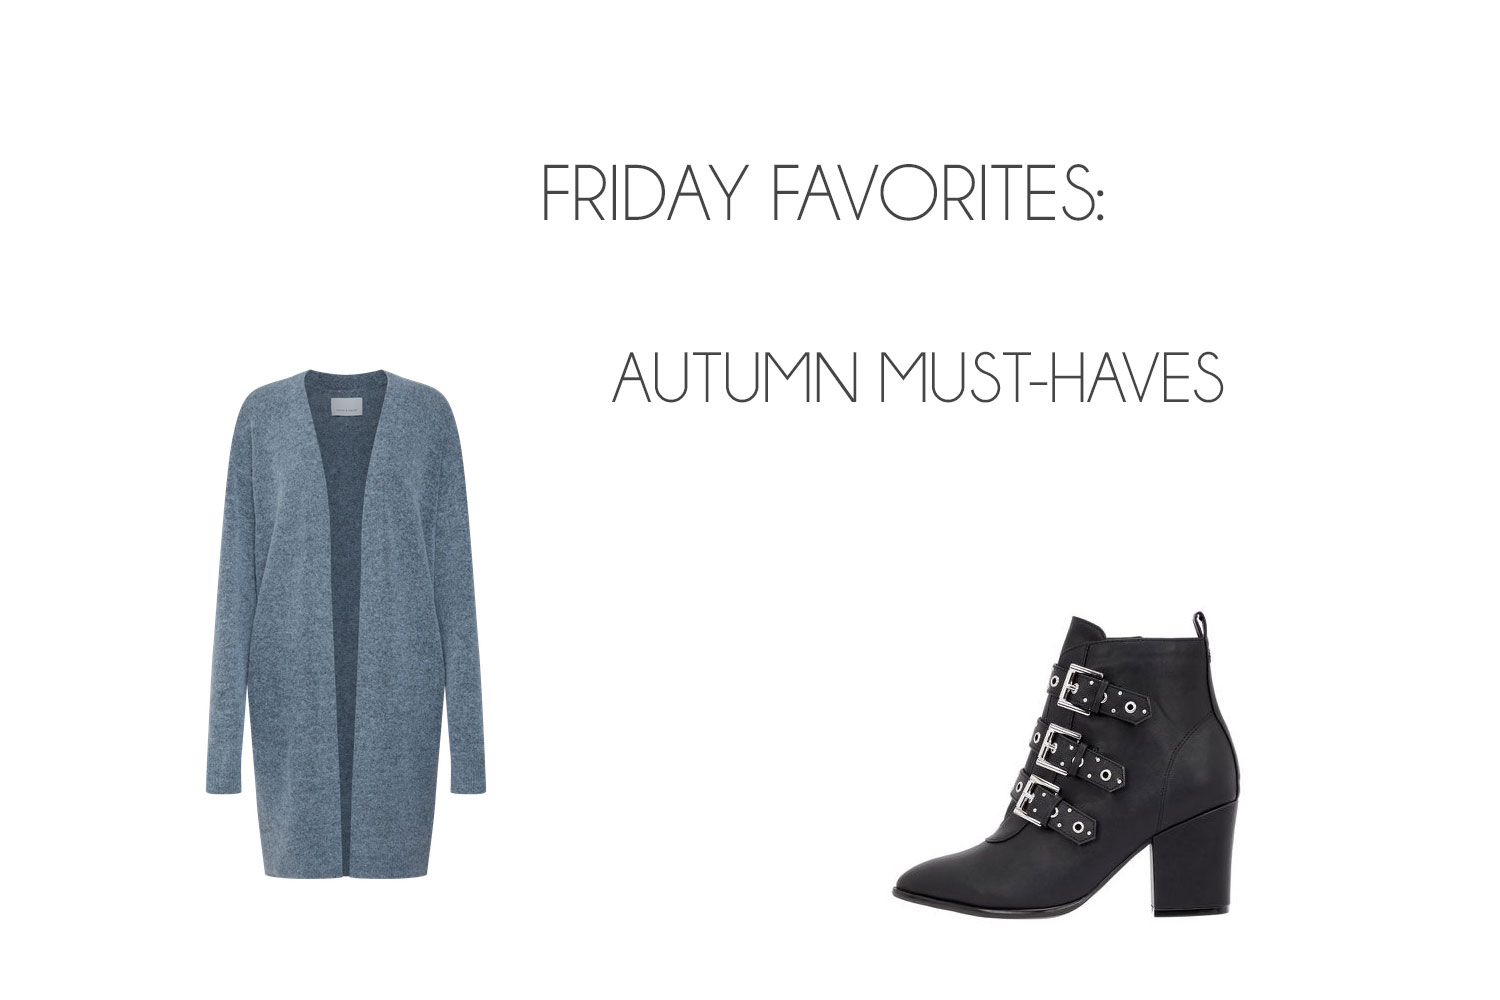 Friday Favorites: Autumn Must-Haves